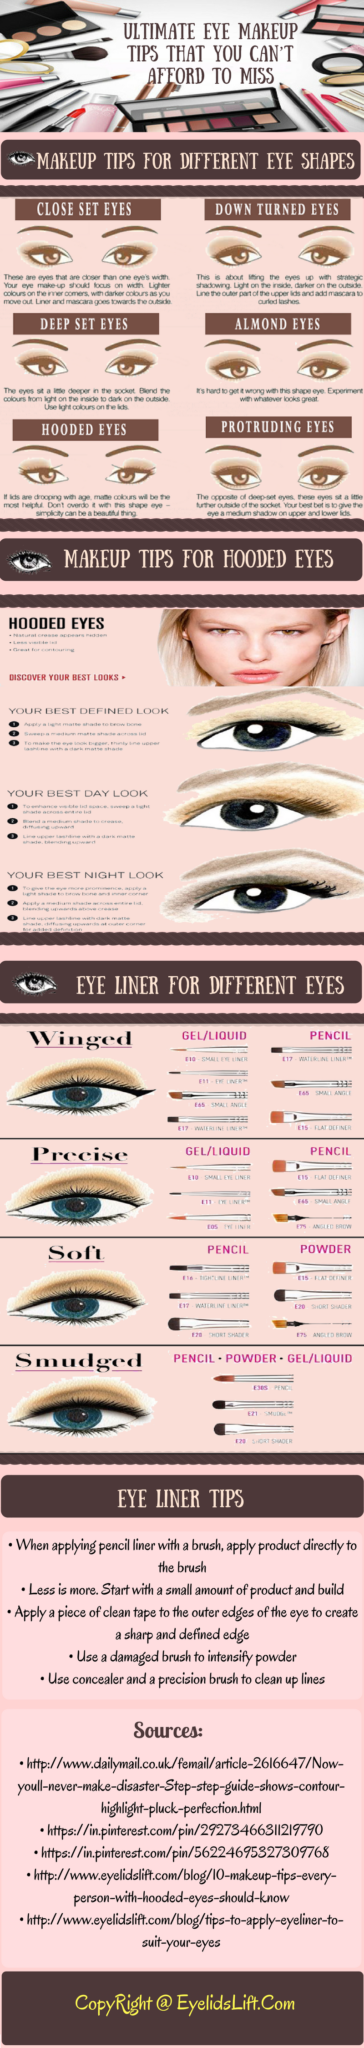 Ultimate Eye Makeup Tips That You Can't Afford To Miss